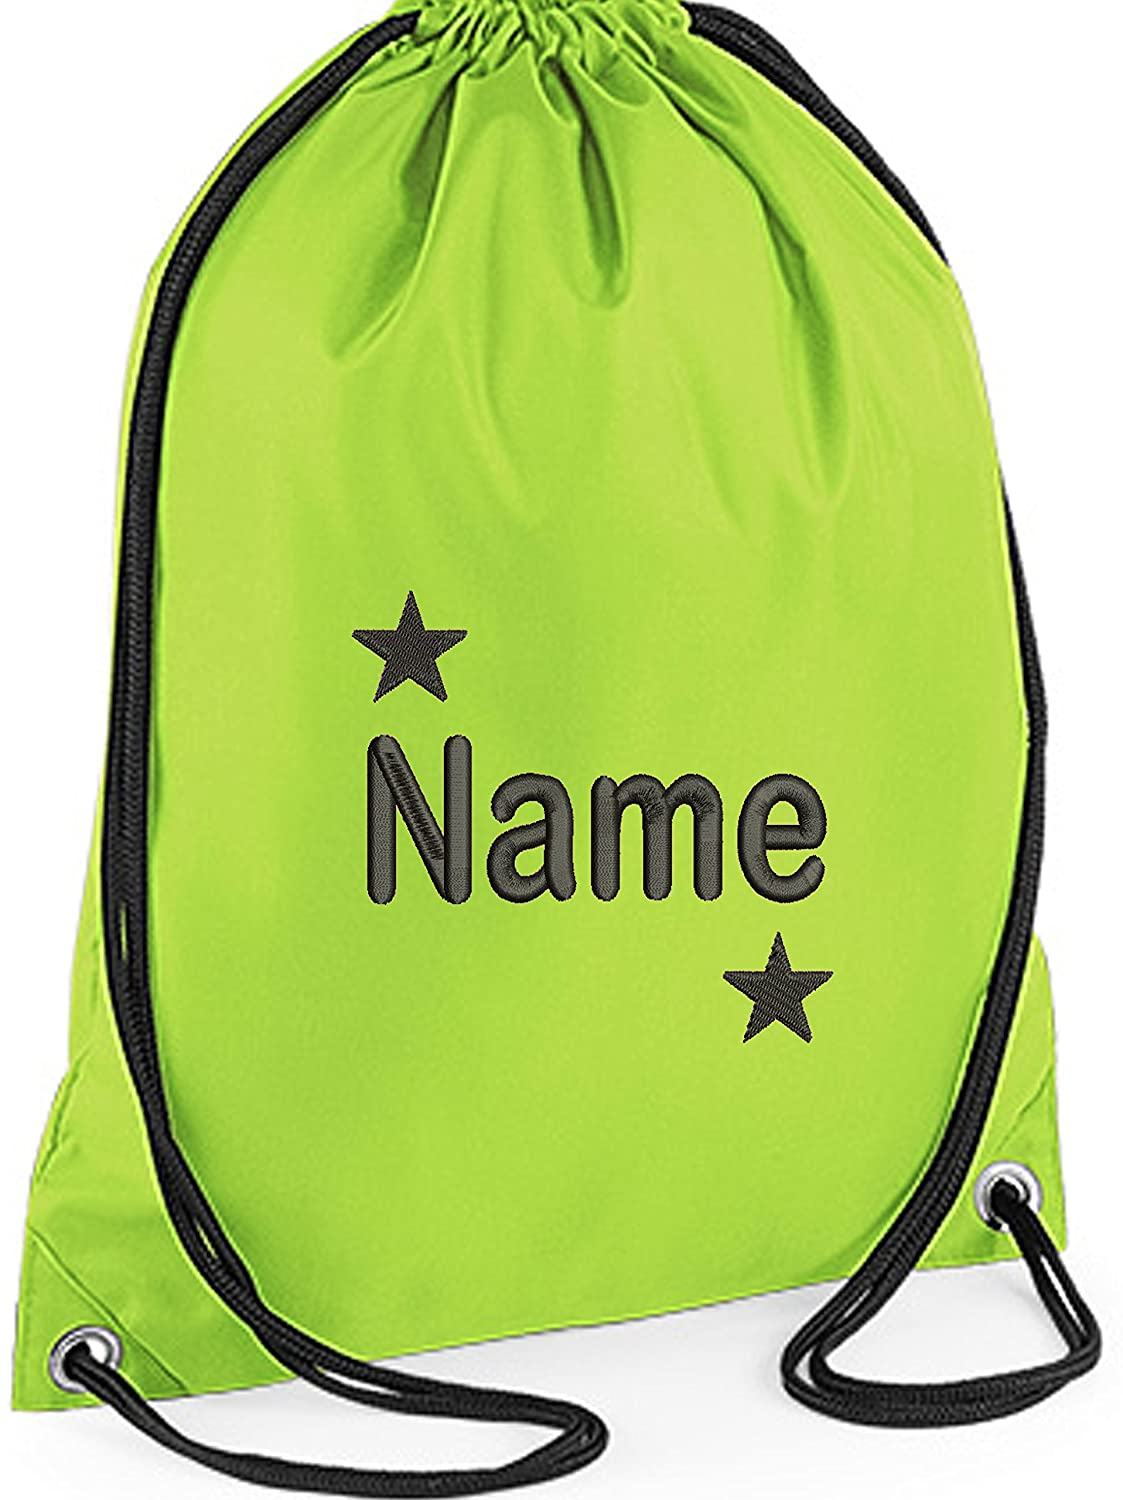 GREAT GIFT 4 KIDS /& NAMED 2 PE DANCE// SWIMMING BAG TRAIN PERSONALISED GYM